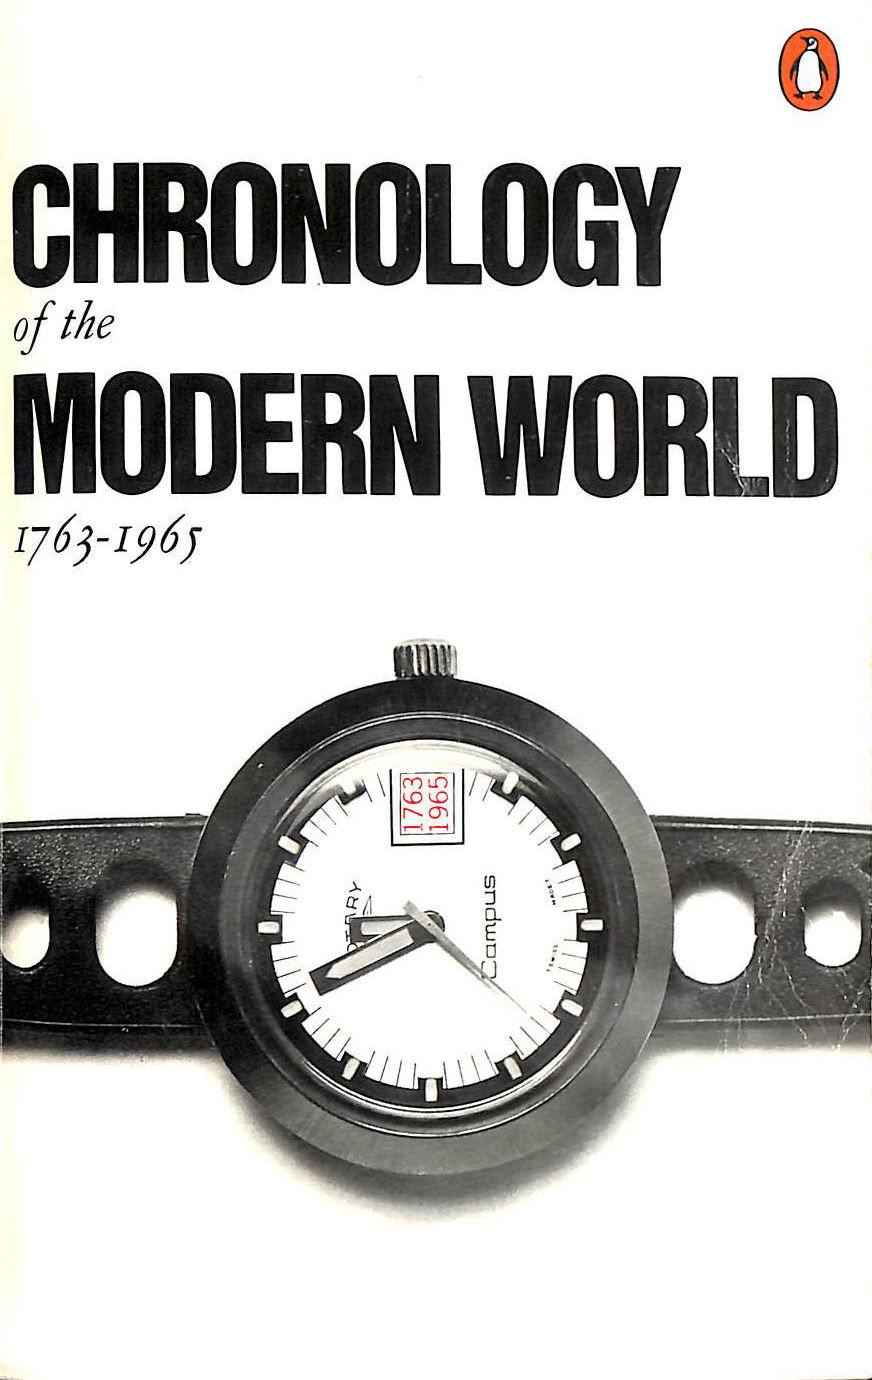 Image for Chronology of the Modern World: 1763-1965 (Penguin reference books)